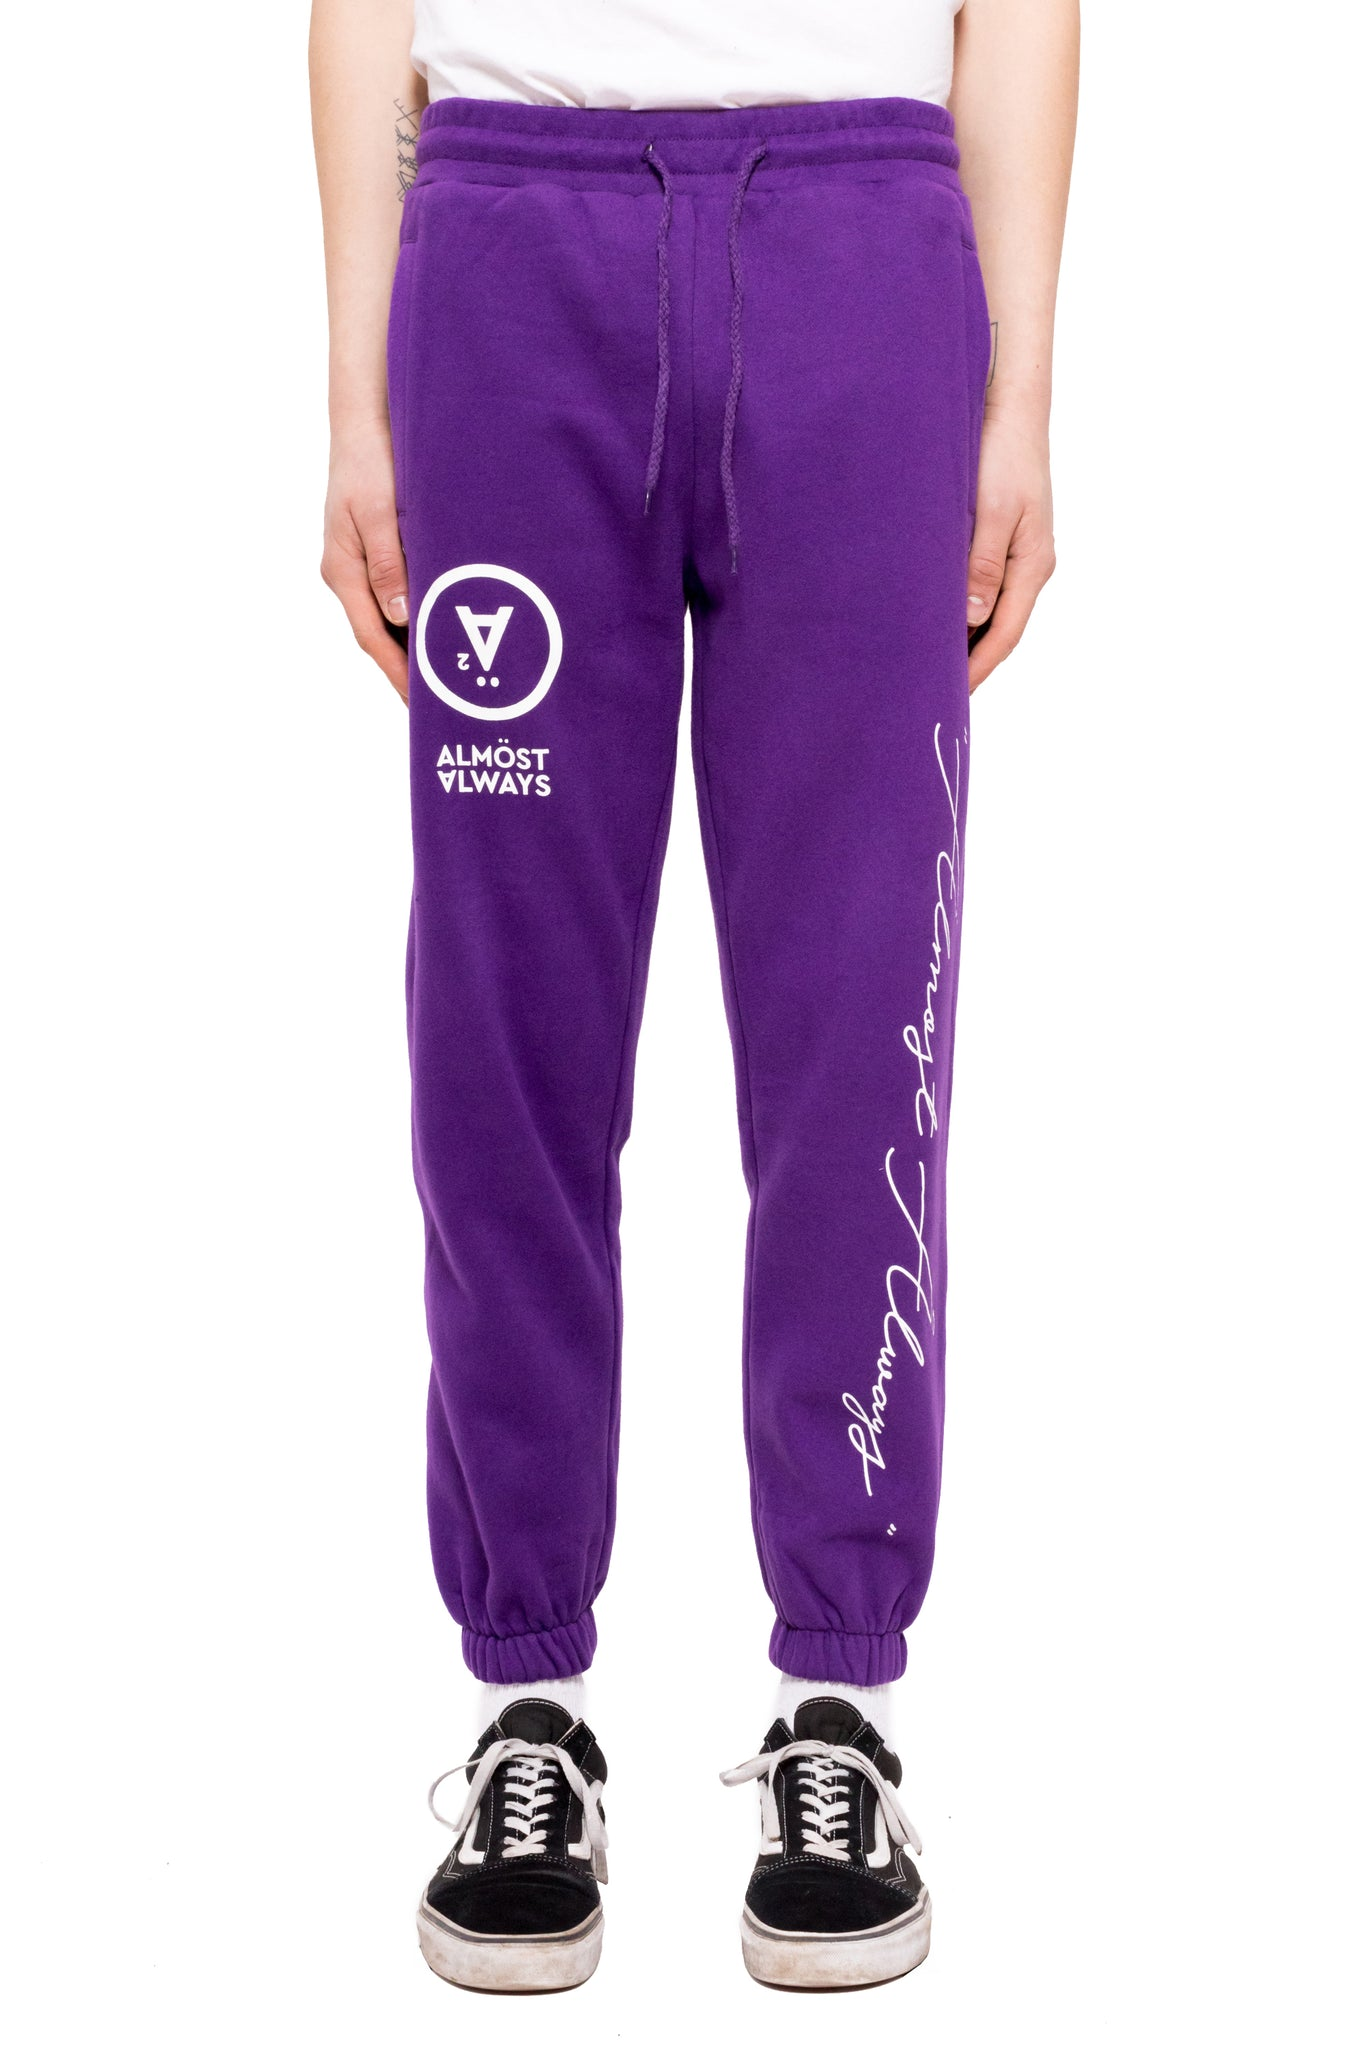 Home Office Sweatpants - Purple